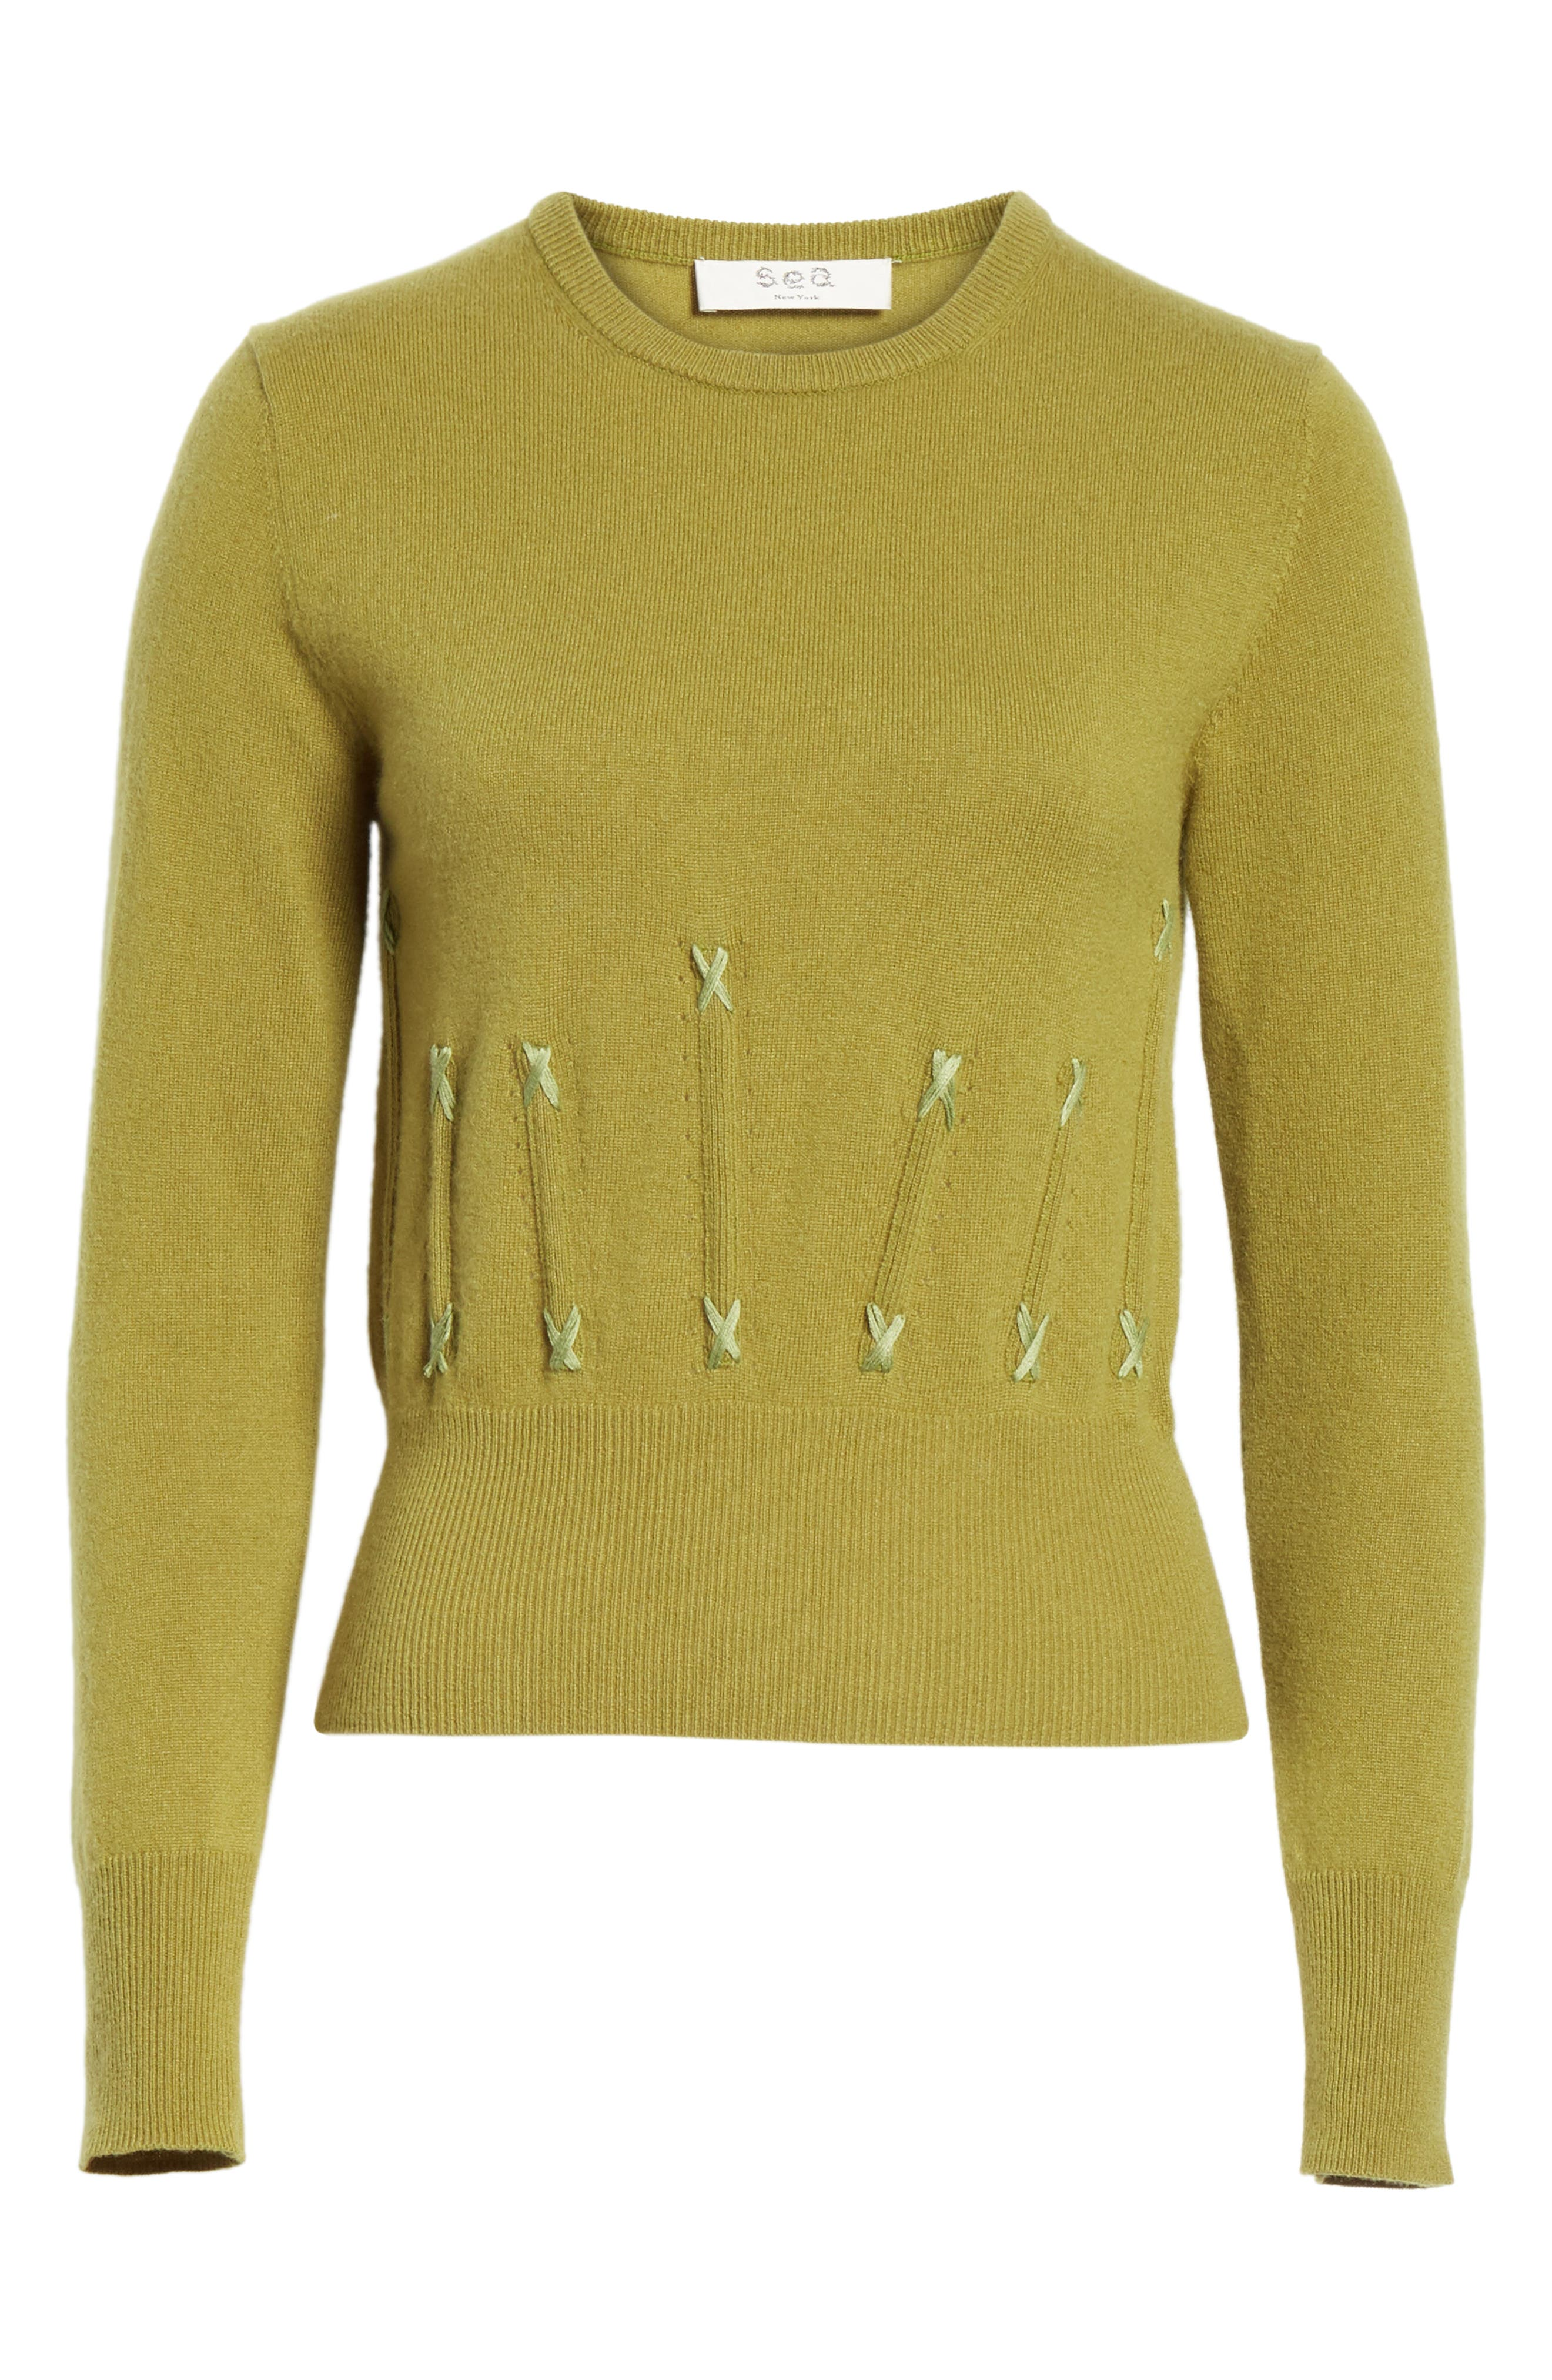 Cailyn Corset Knit Cashmere Sweater,                             Alternate thumbnail 6, color,                             GREEN